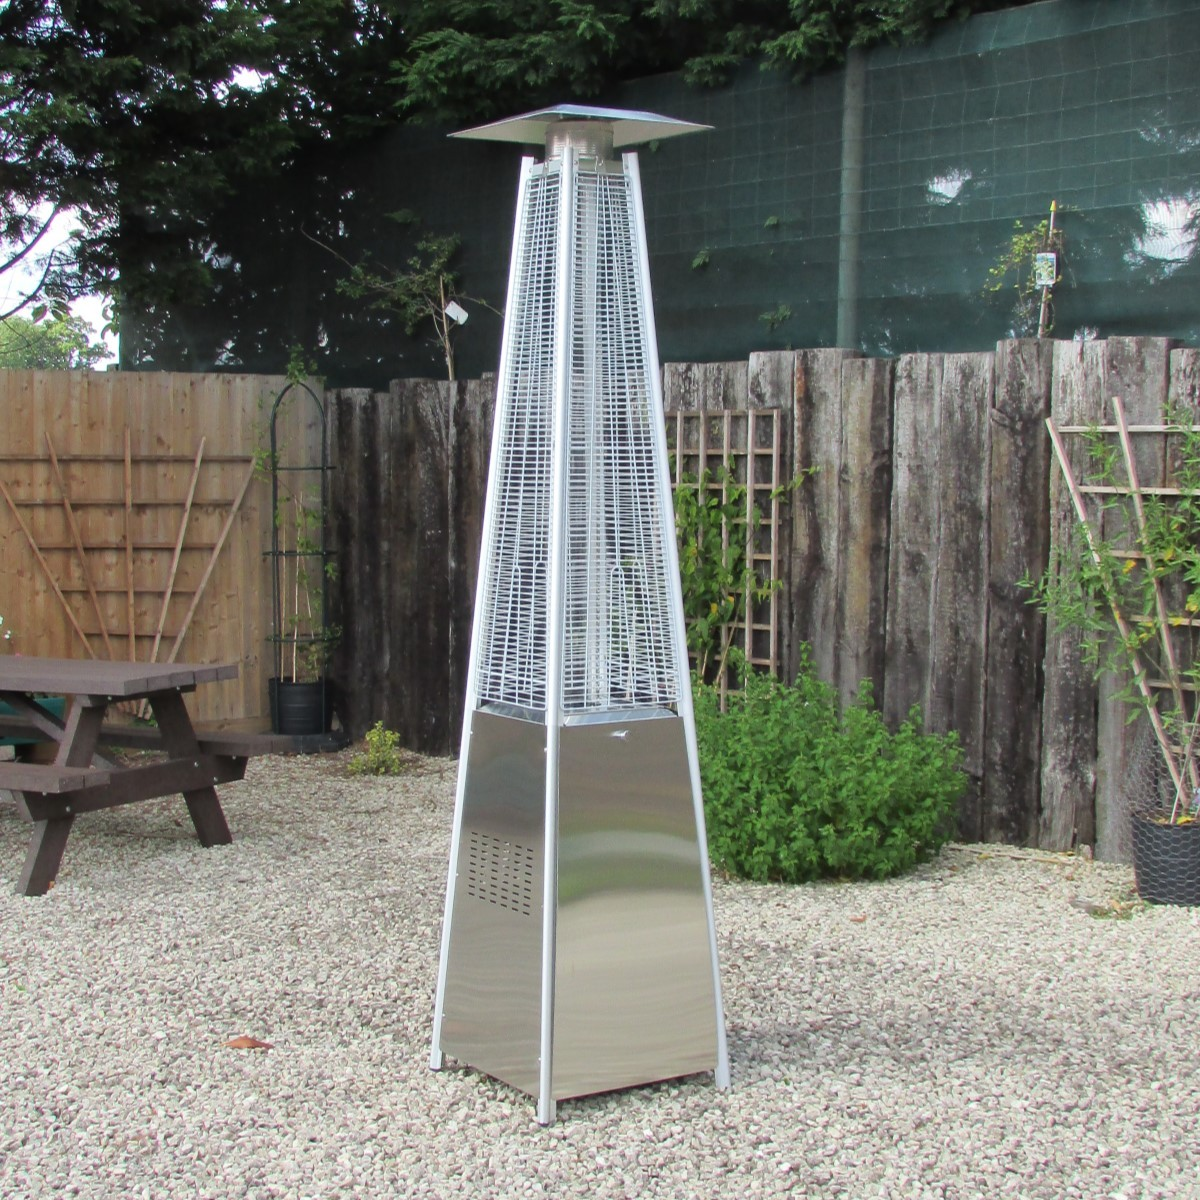 A pyramid gas patio heater located on a gravel courtyard